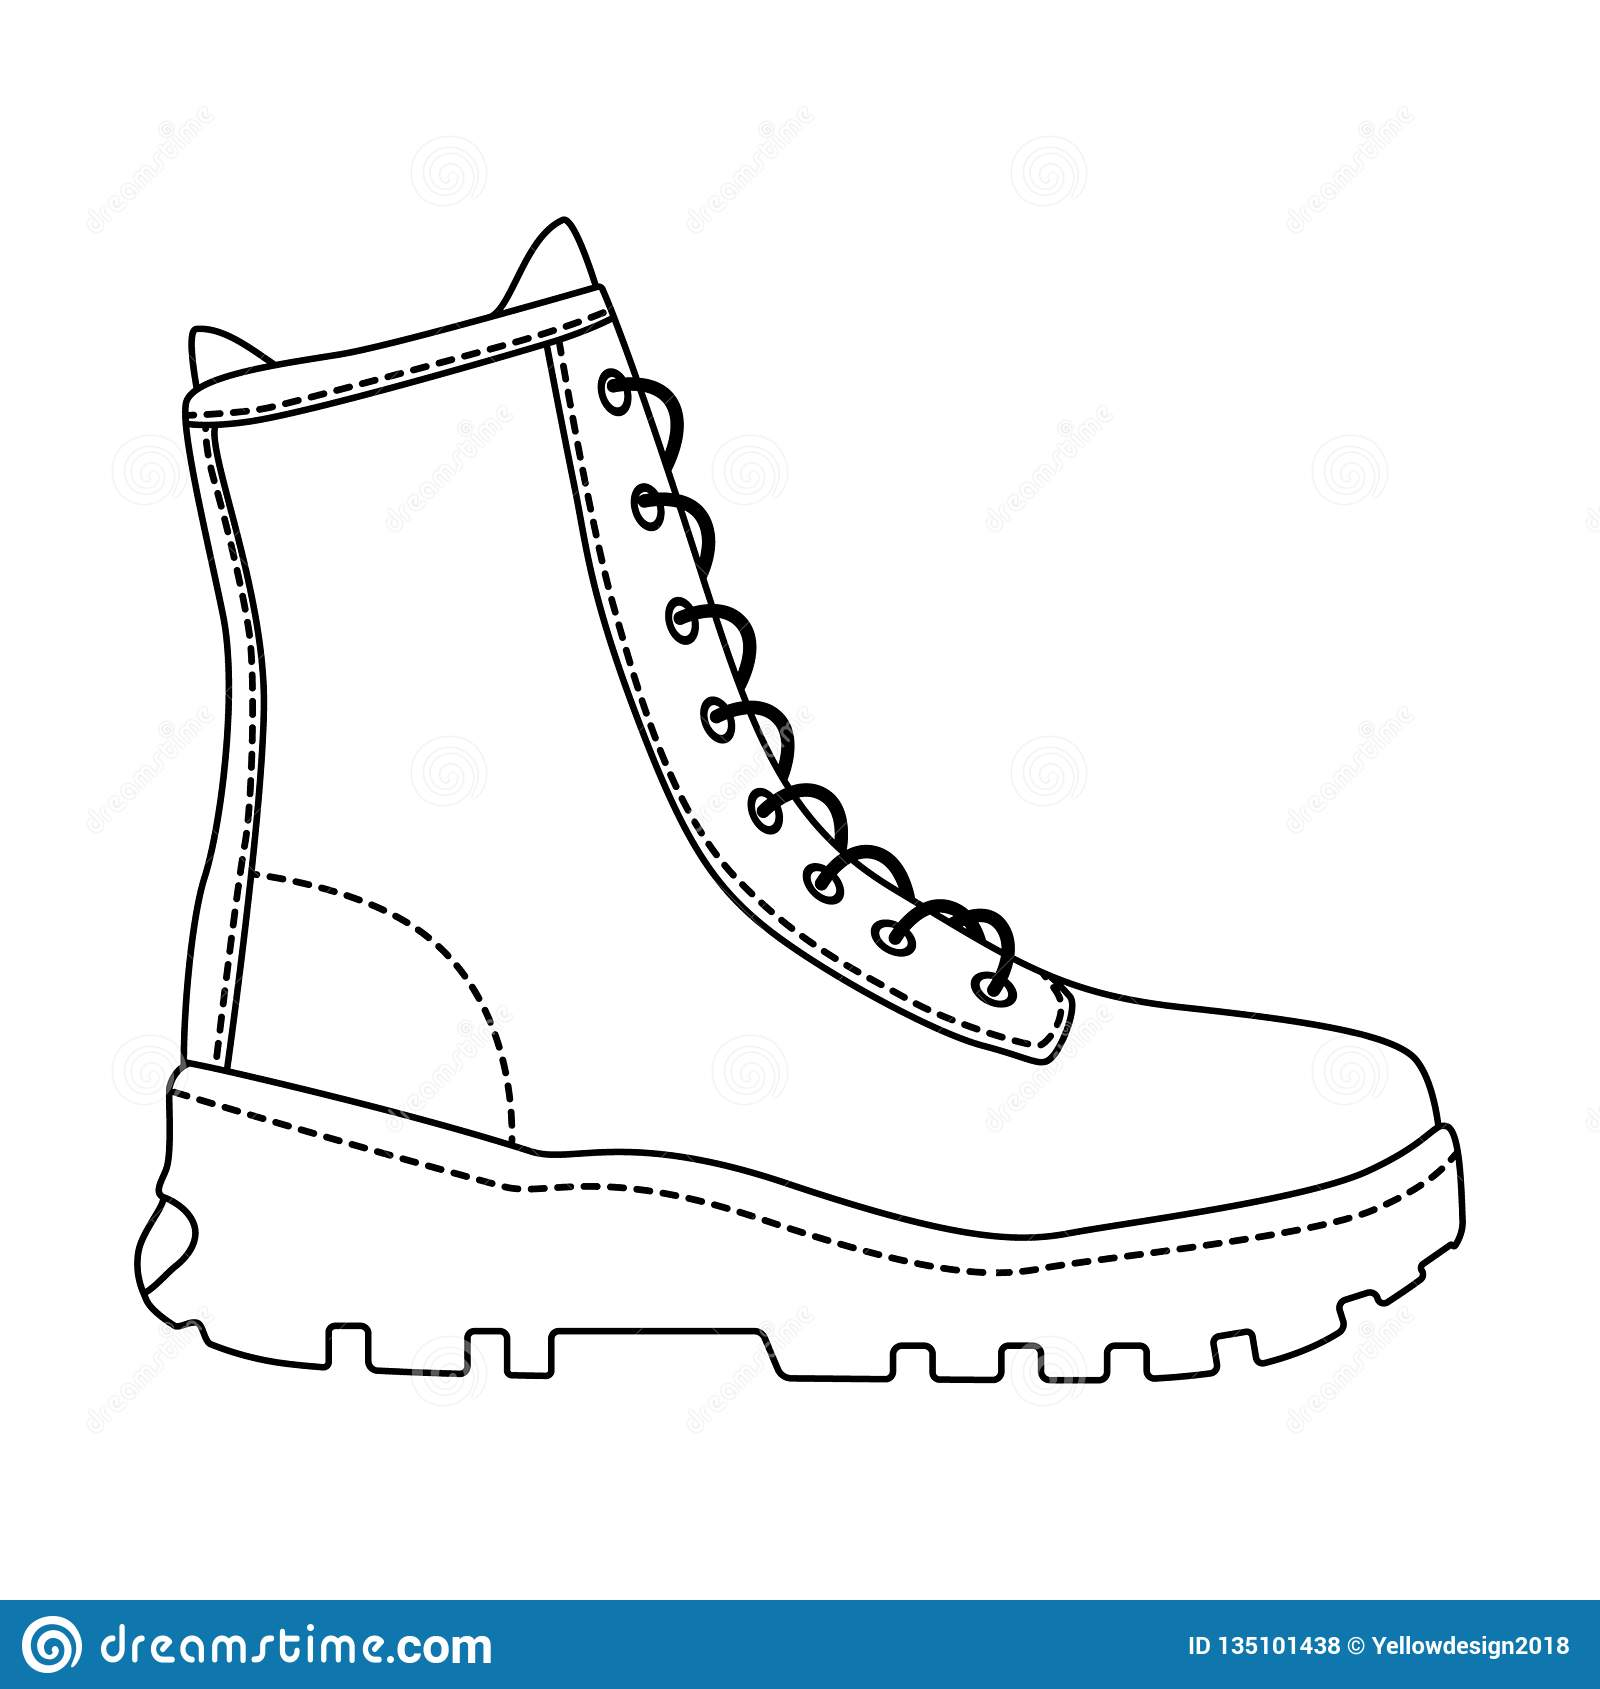 489bcc14a1 Men shoes high top sneakers isolated. Male man season shoes icons.  Technical sketch